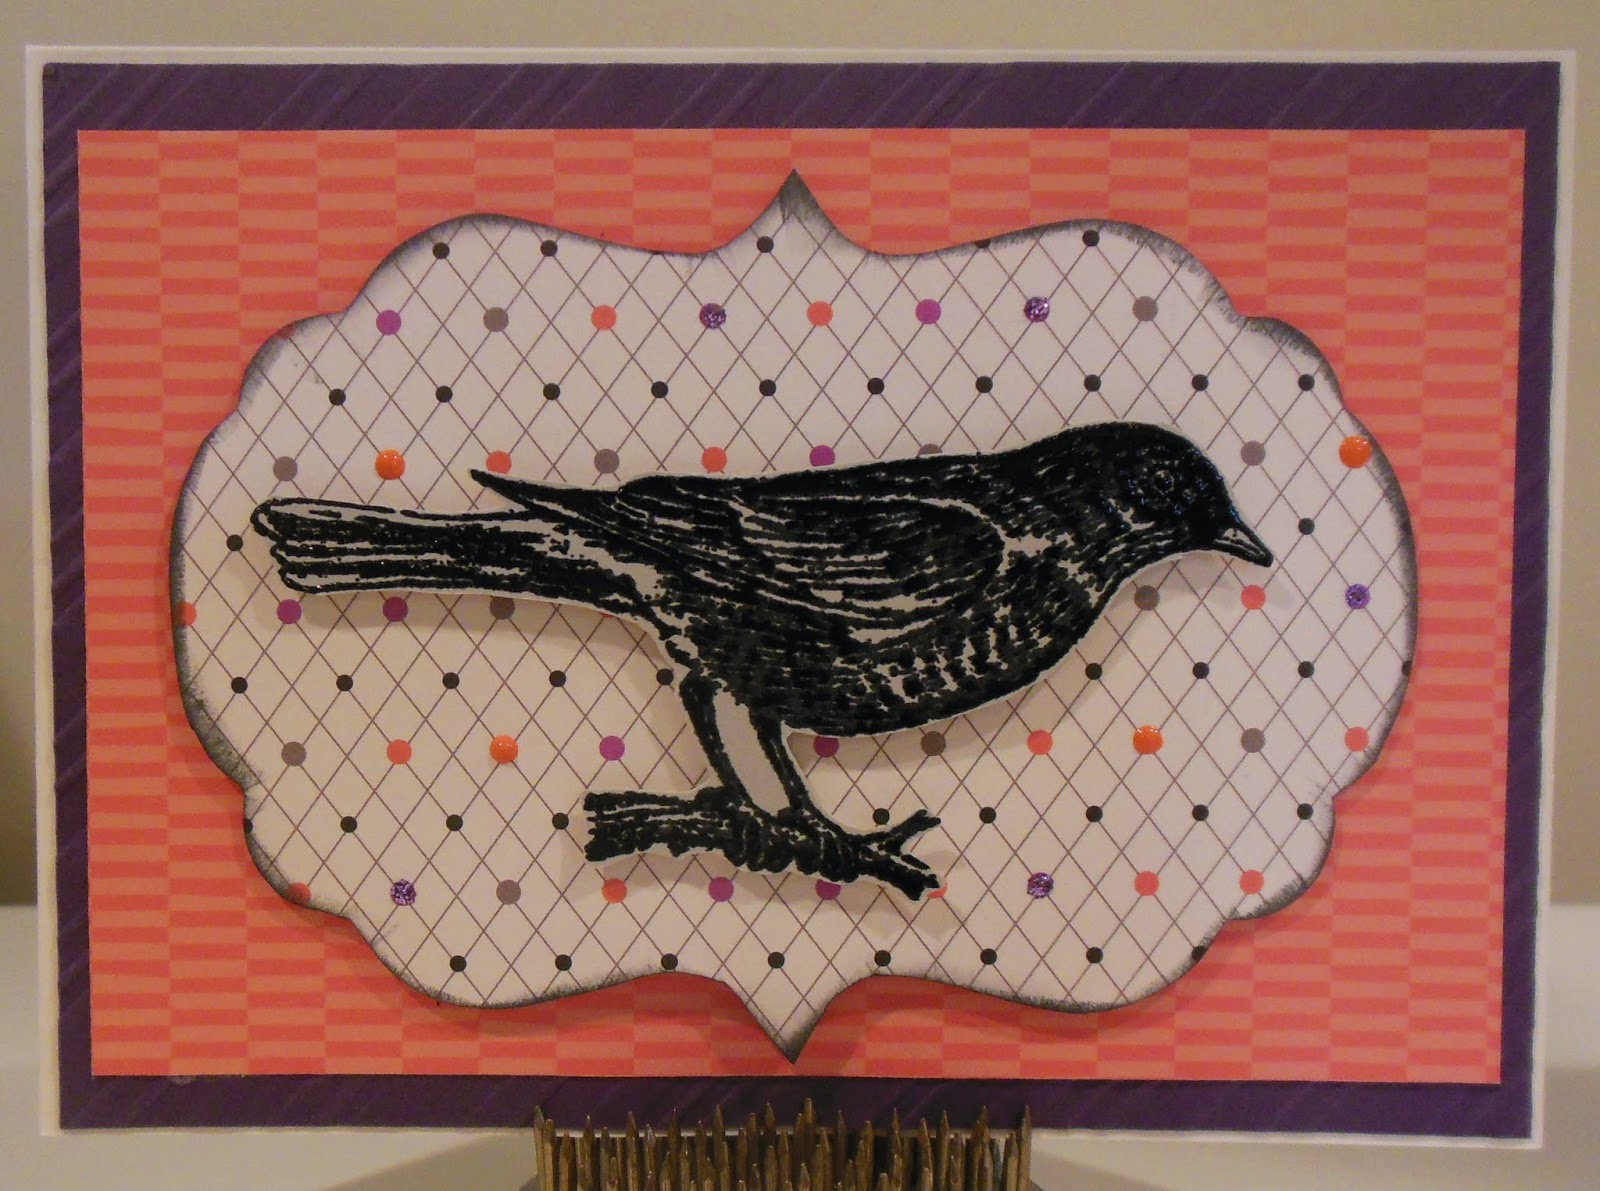 http://lynnseverydayideas.blogspot.com/2014/09/close-to-my-heart-raven-card.html